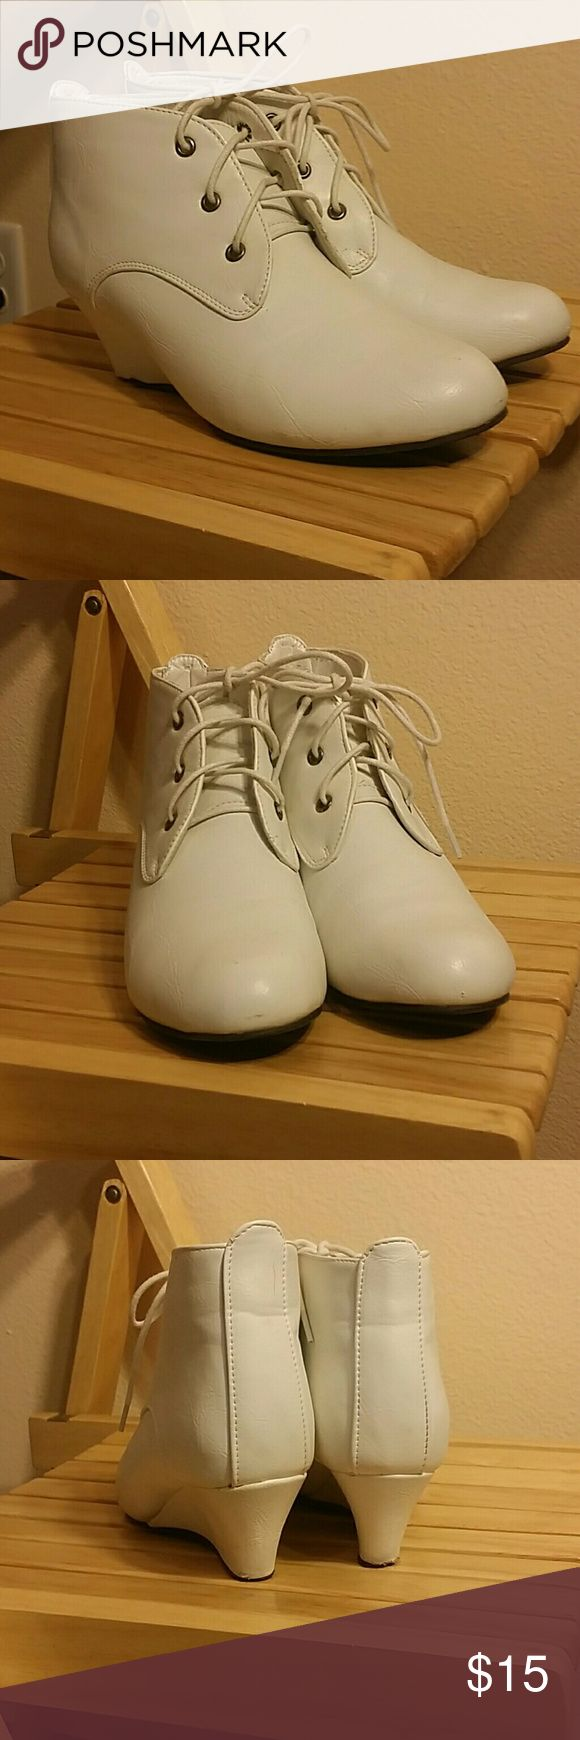 White Oxford Wedge Heels White, light wear on sole, easy to clean, Oxford style West Blvd Shoes Wedges